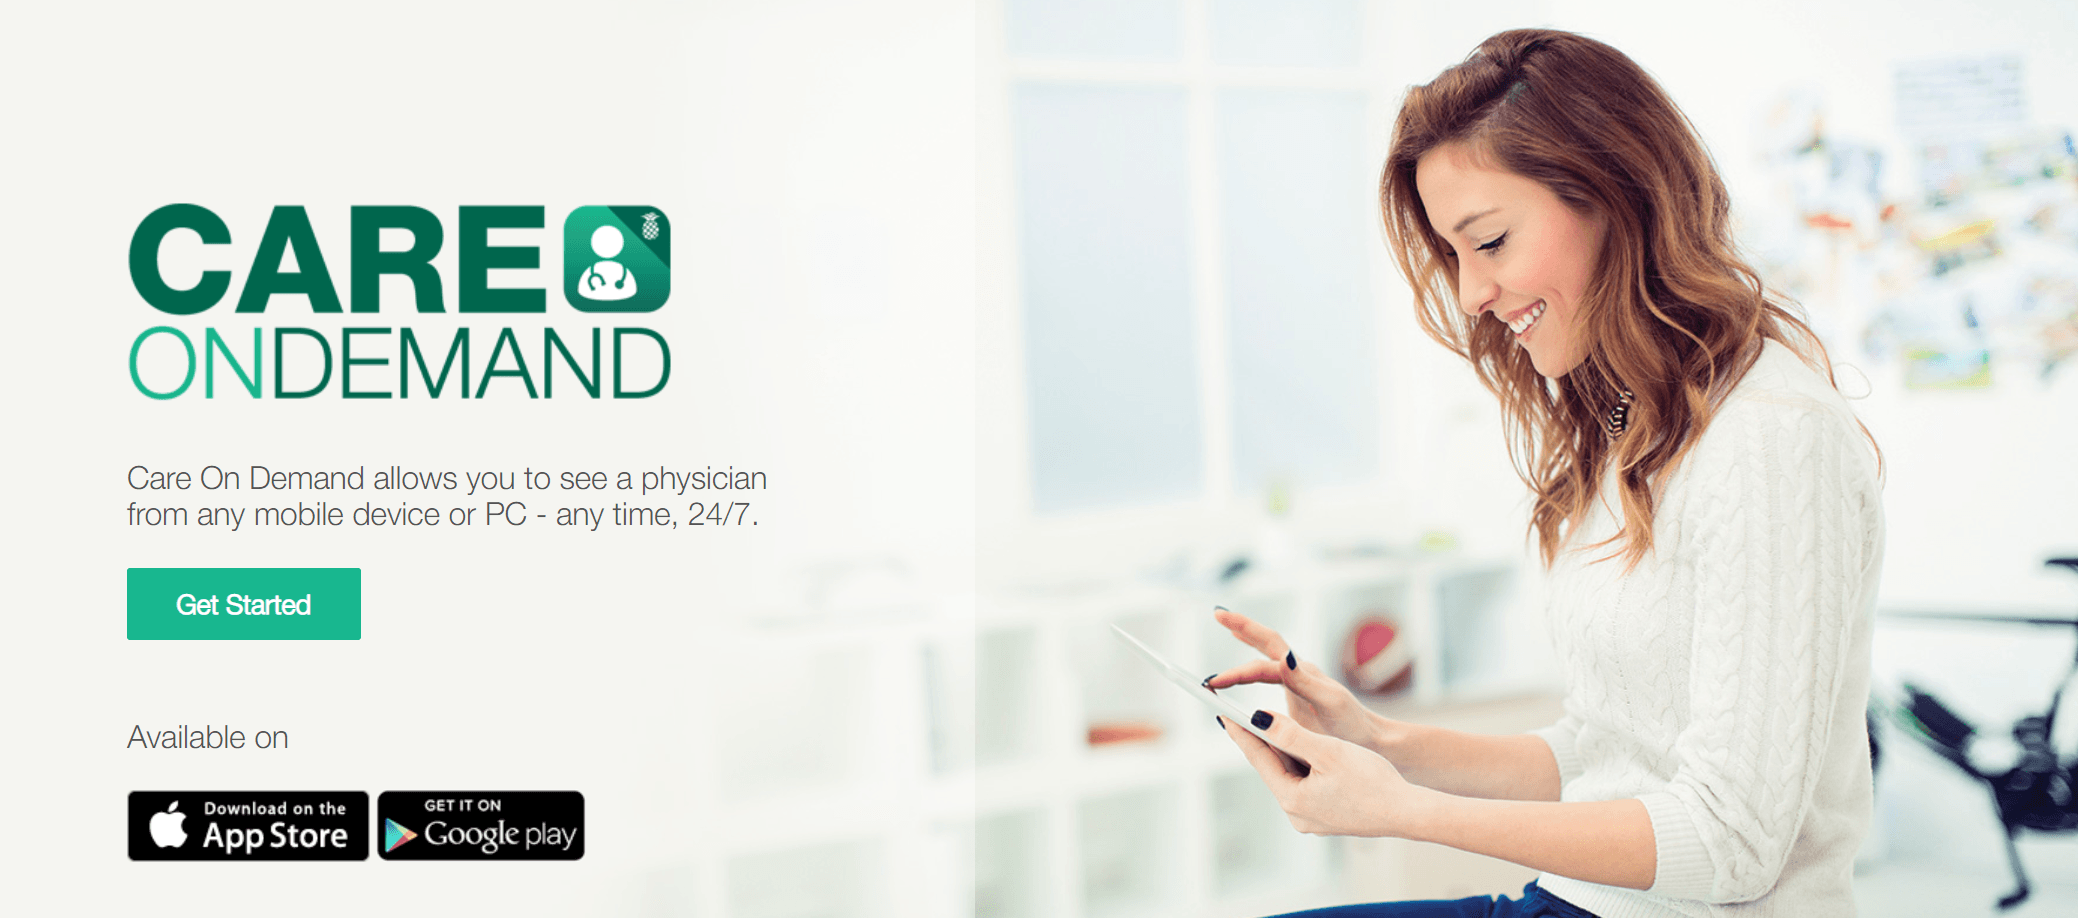 Baptist Health Offers Free Virtual Urgent Visits To South Florida